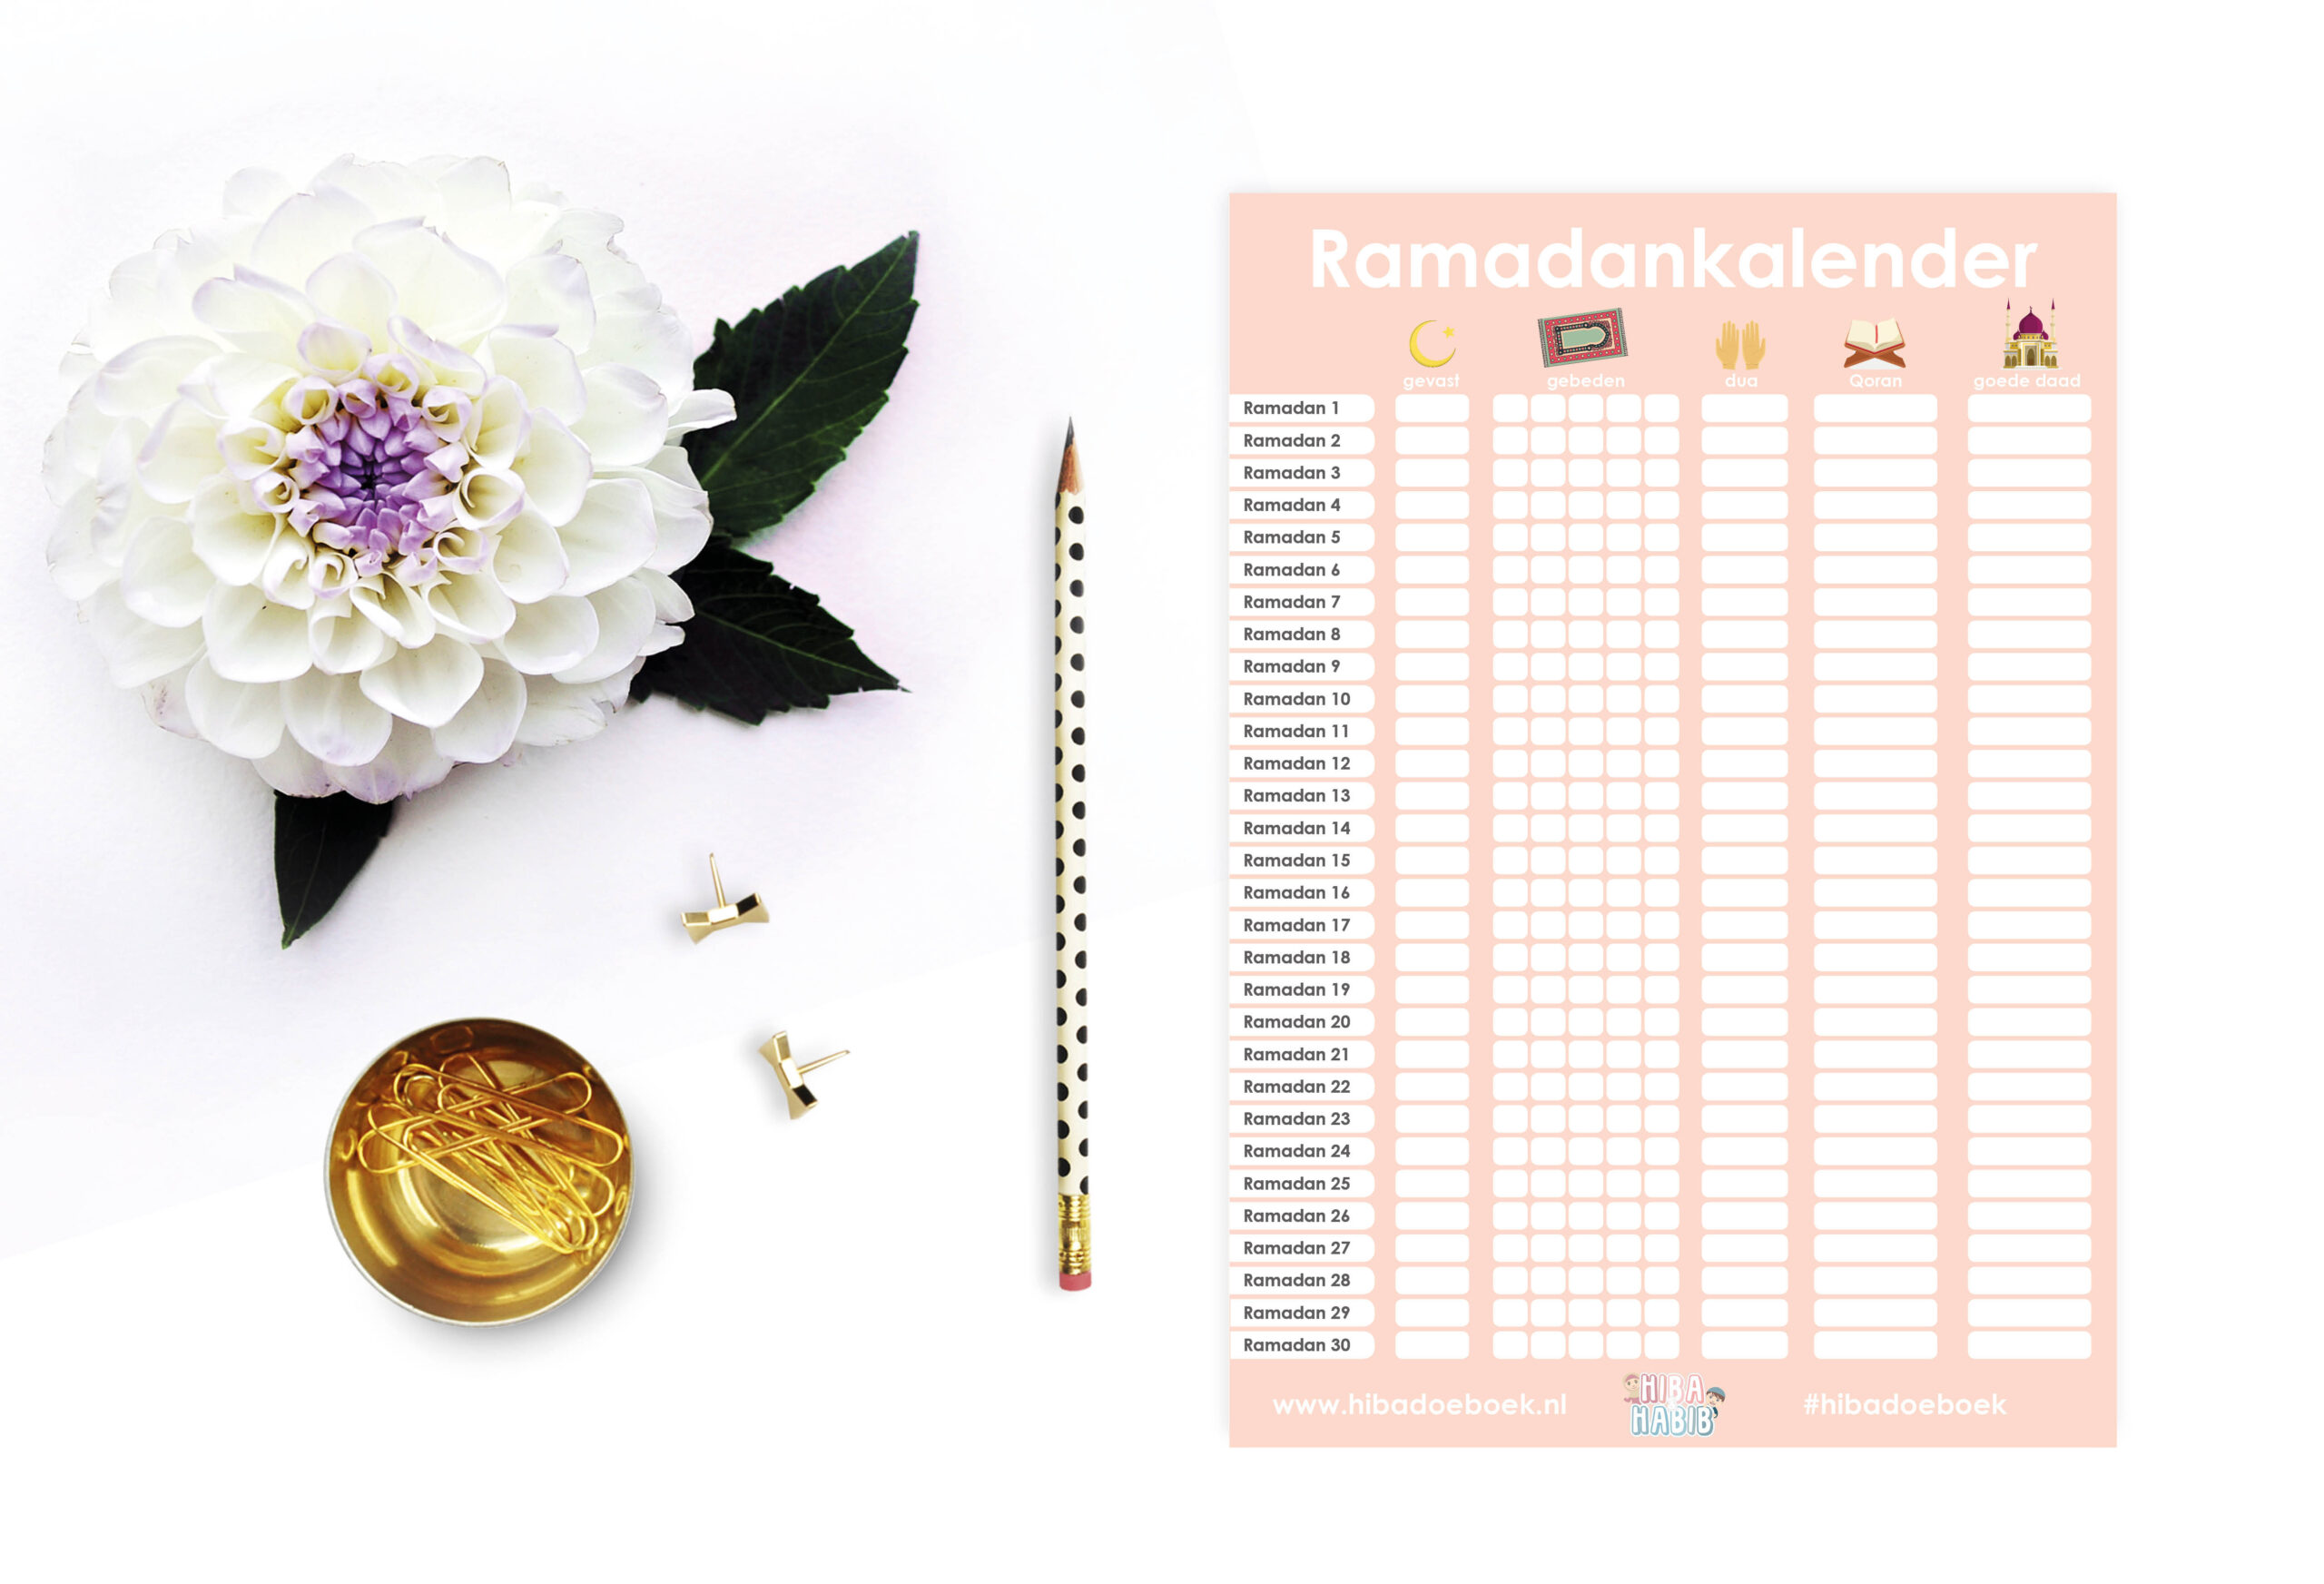 Ramadankalender 2019 Gratis download!